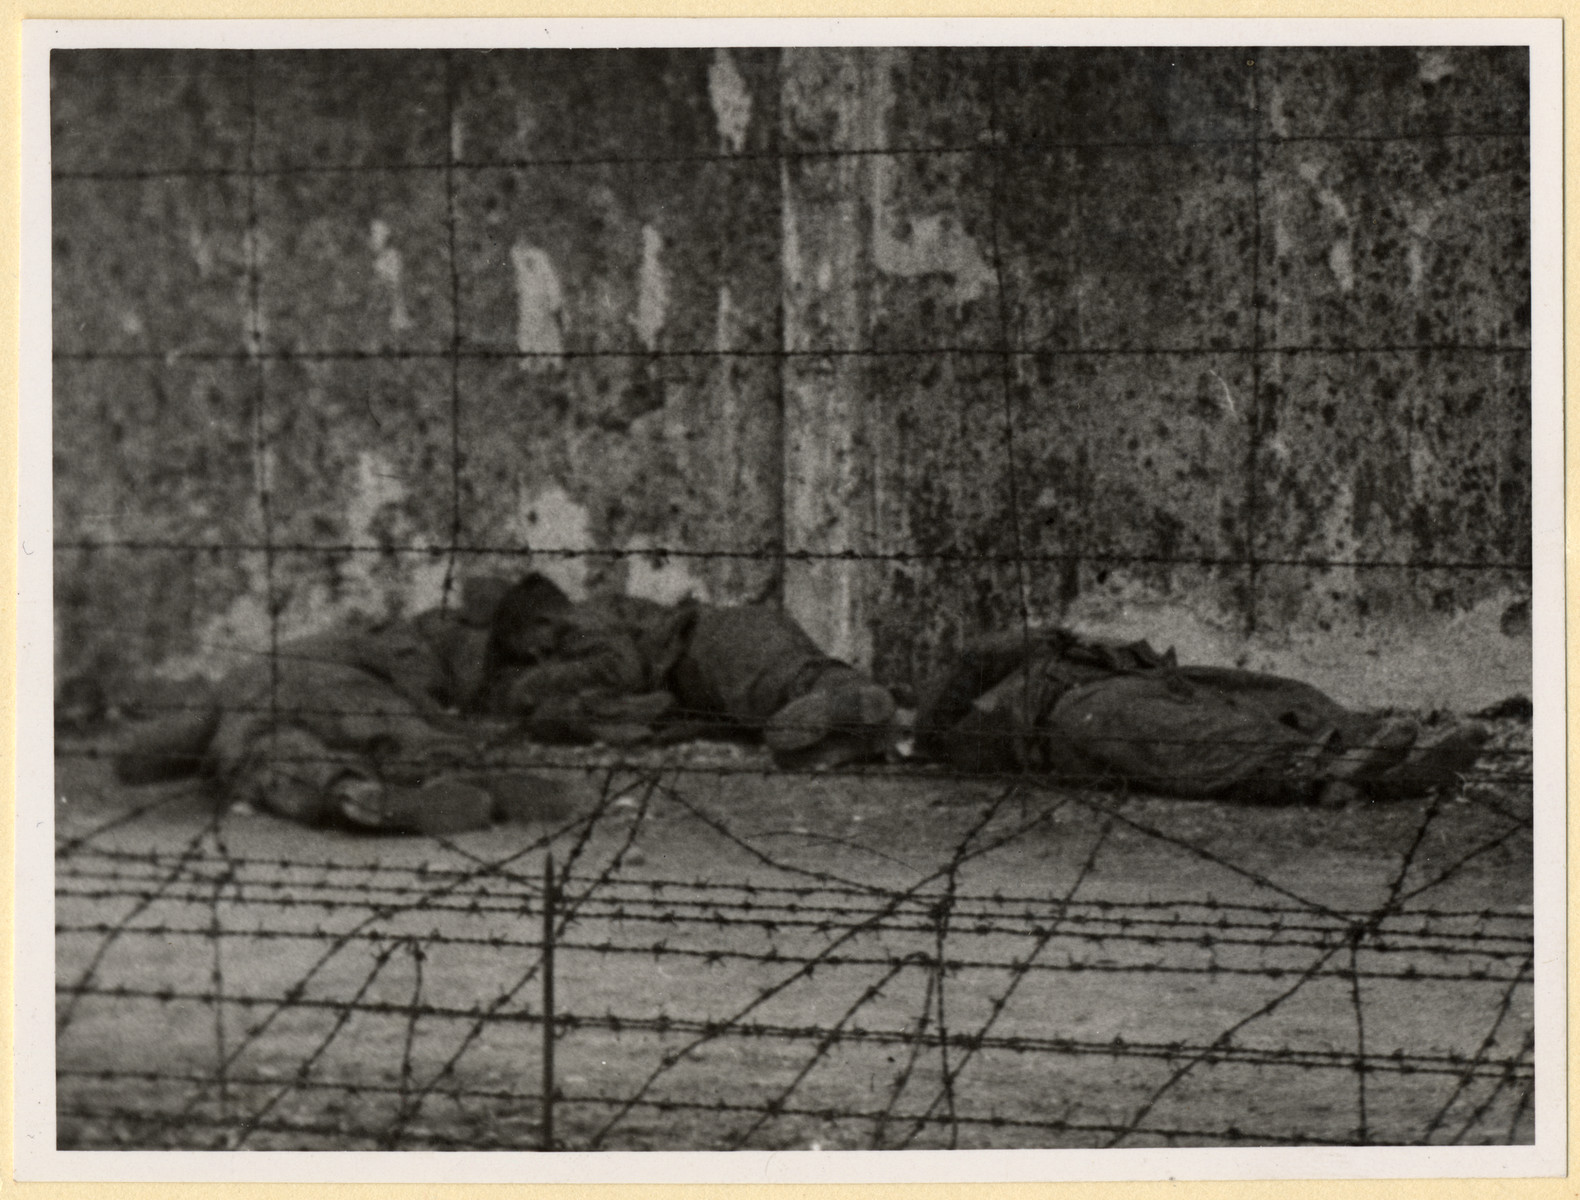 View of the corpses of SS men shot by former prisoners shortly after the liberation of the Dachau concentration camp.